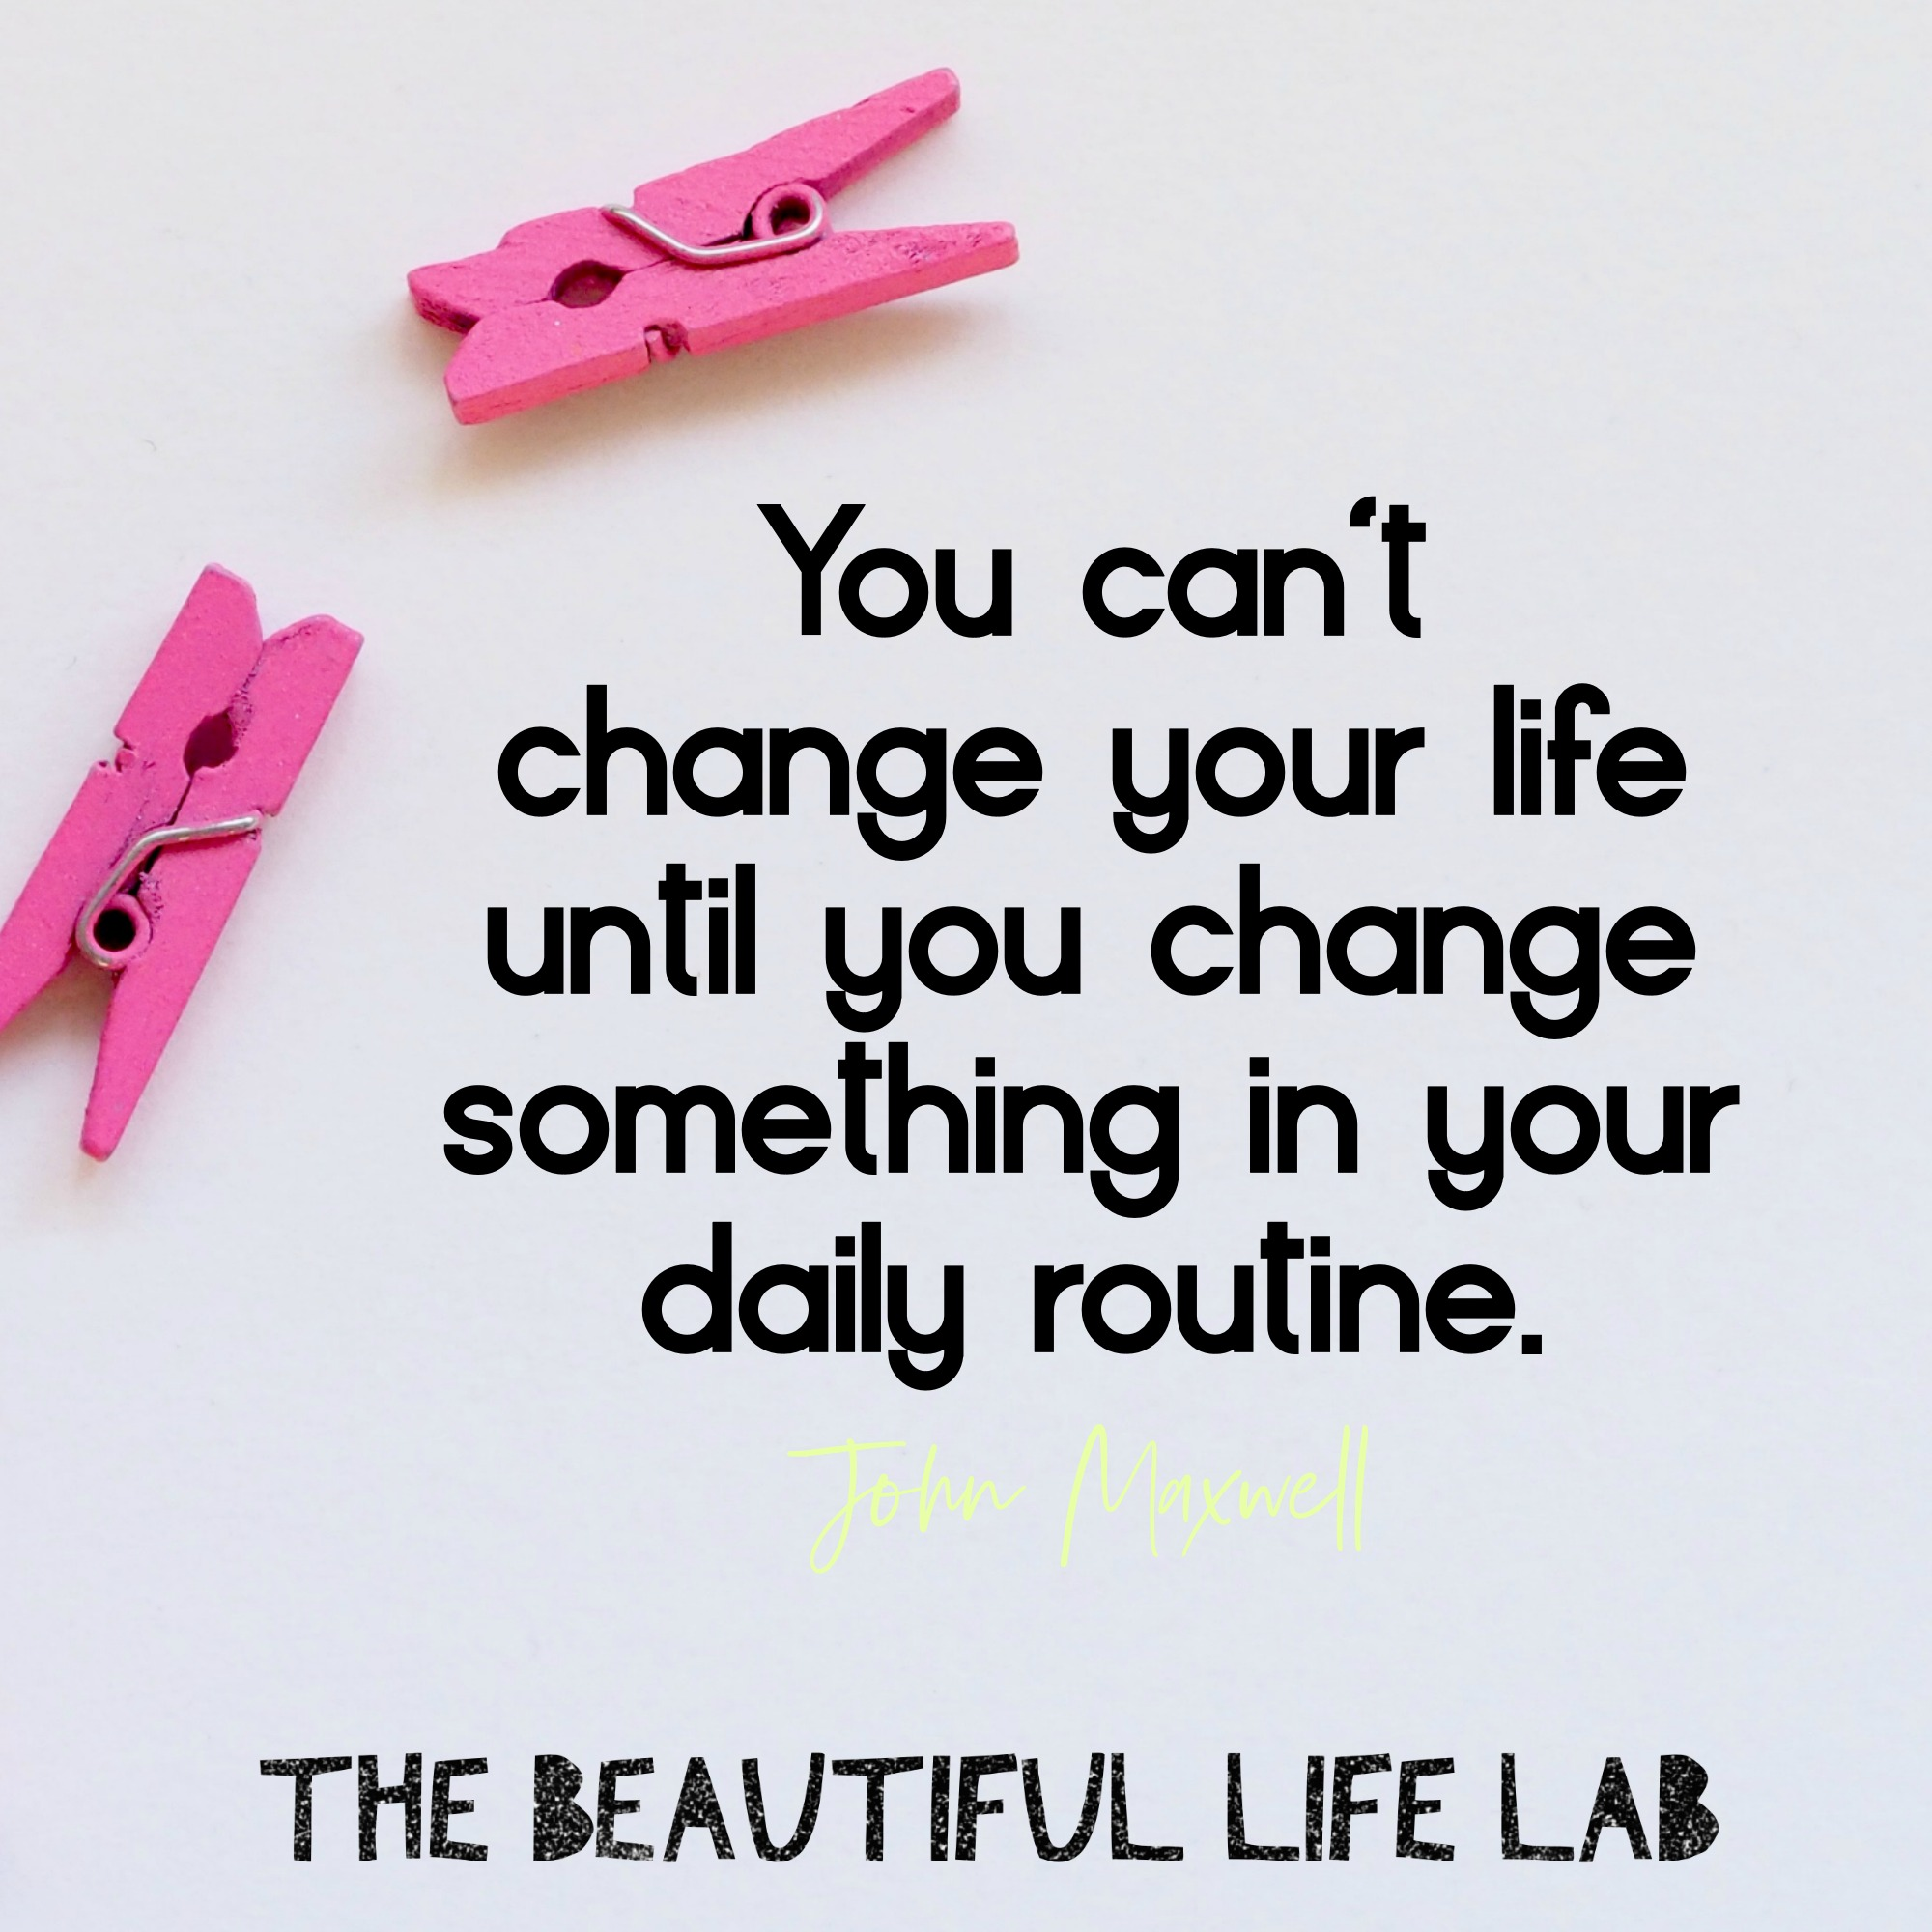 beautiful life lab quotes.jpg